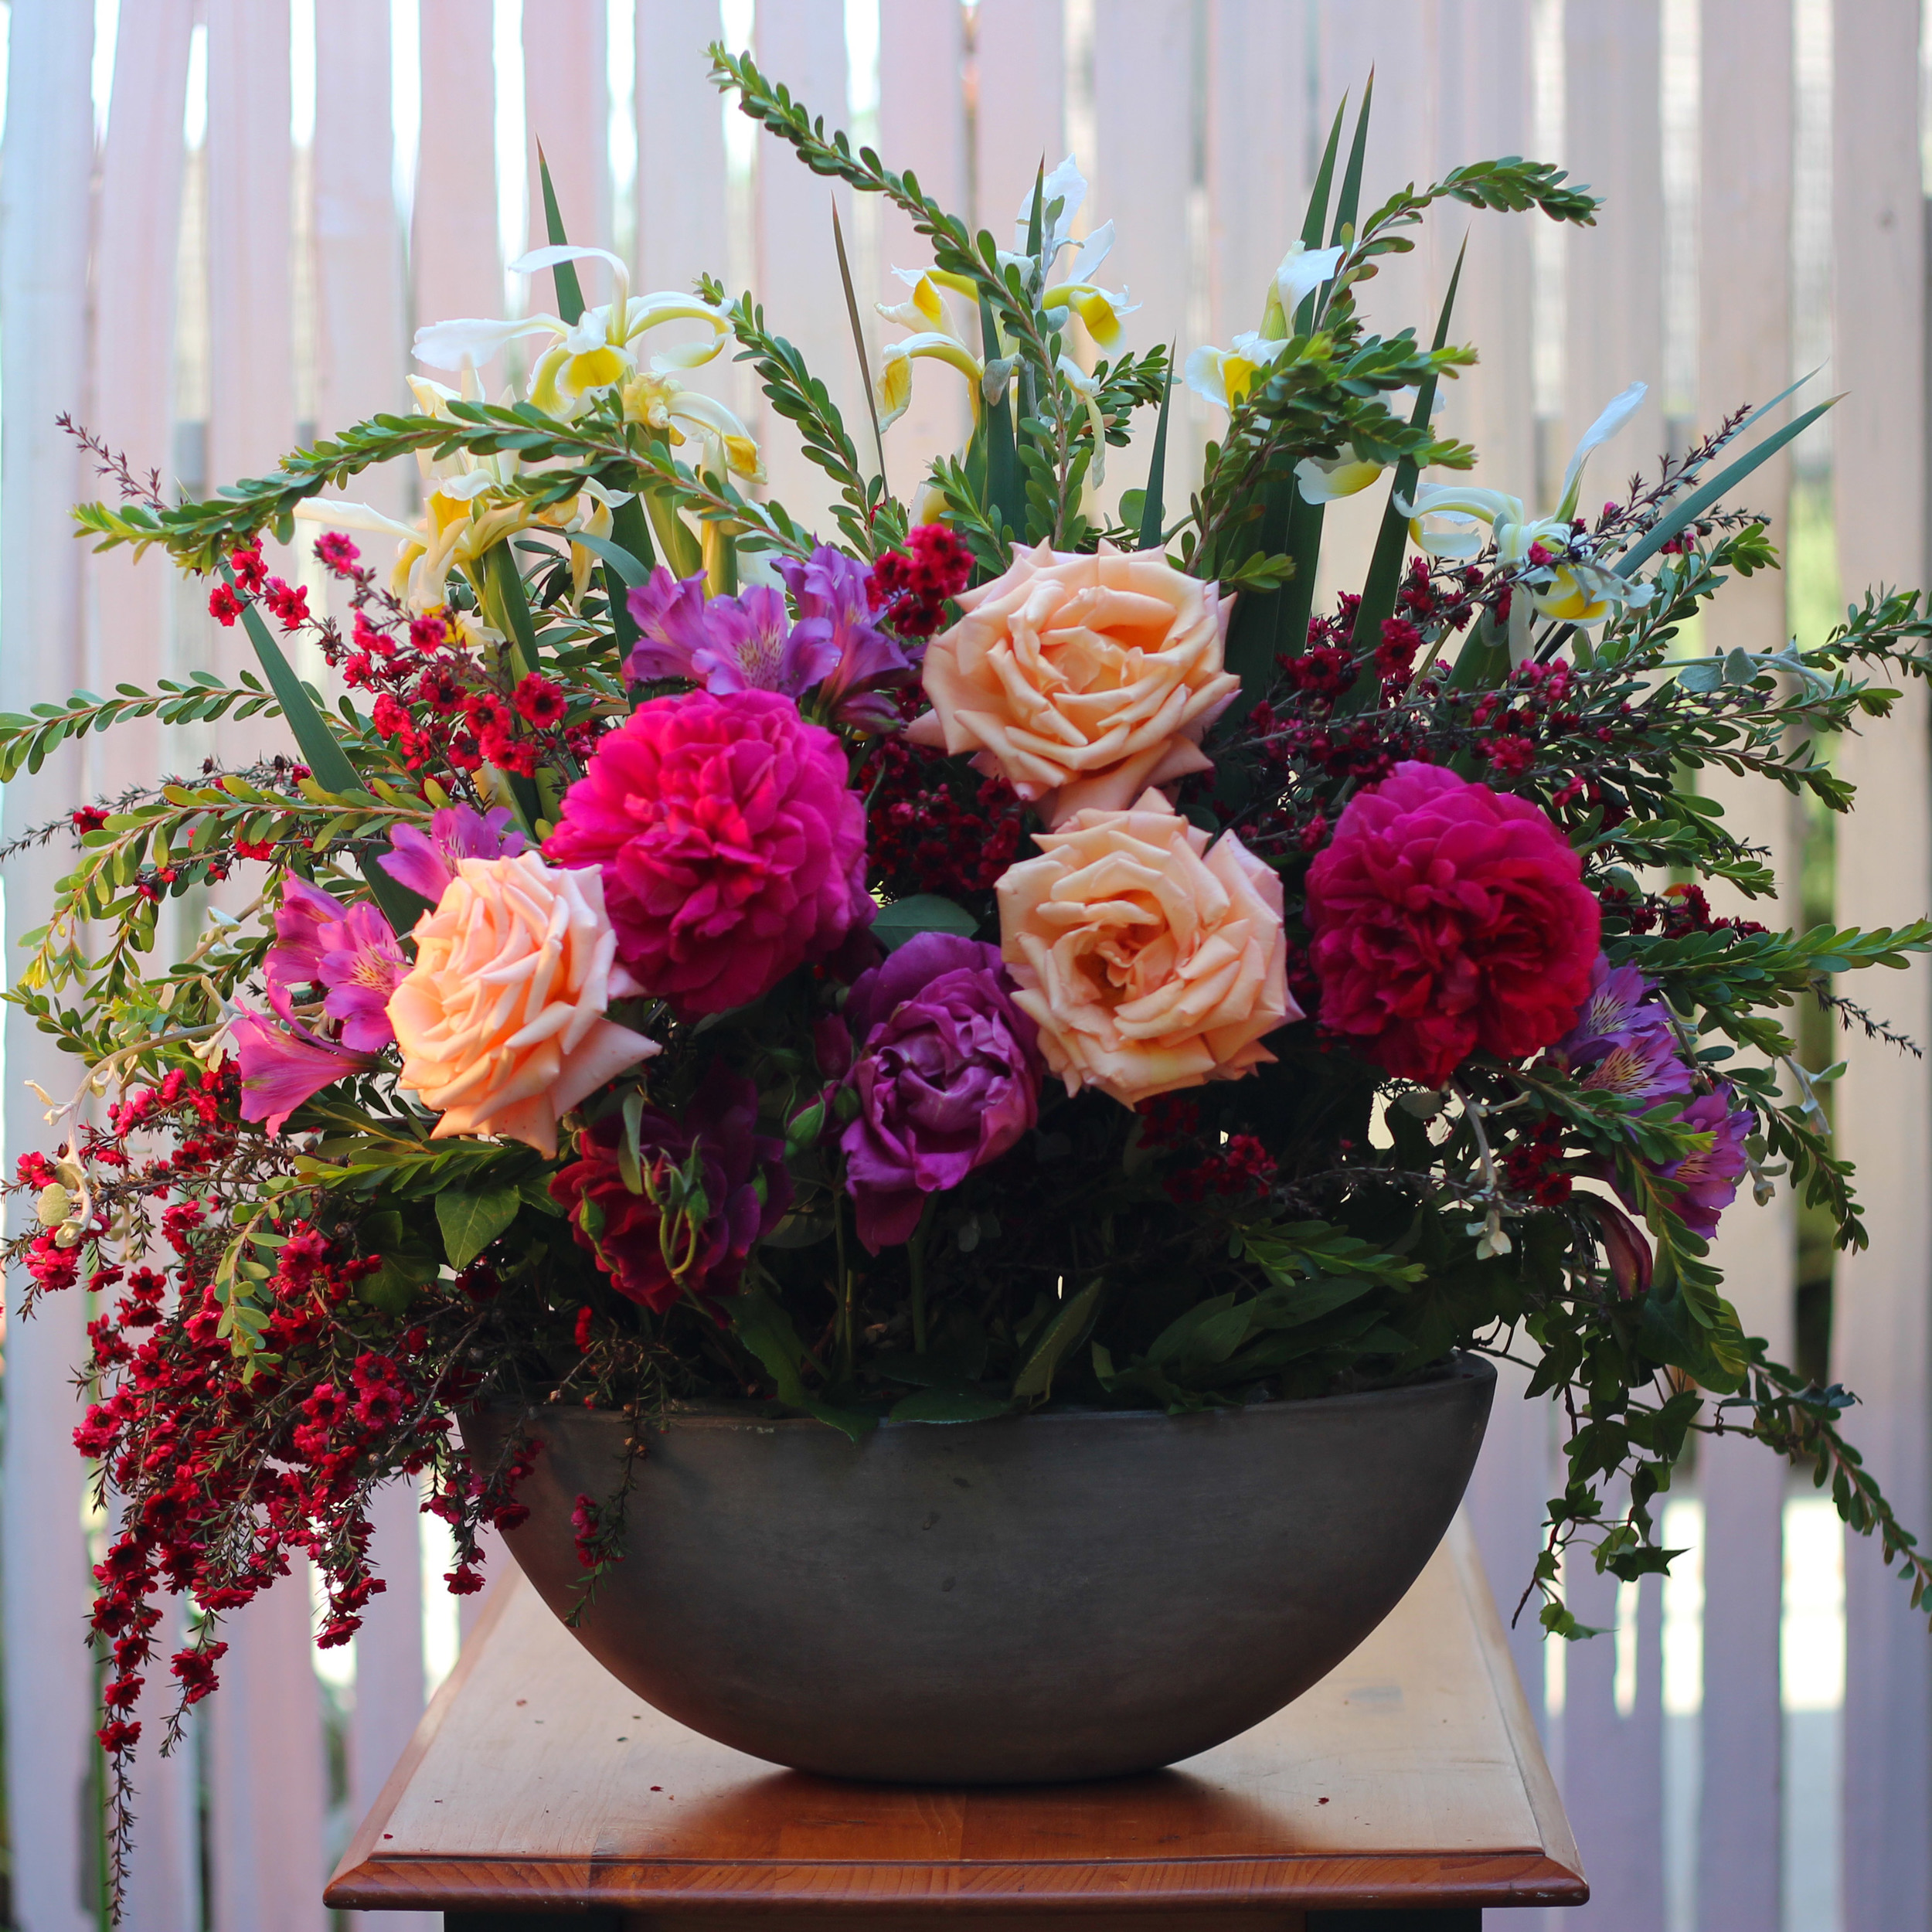 Add lavender roses low and lavender alstroemeria  in an arch above the roses in front.